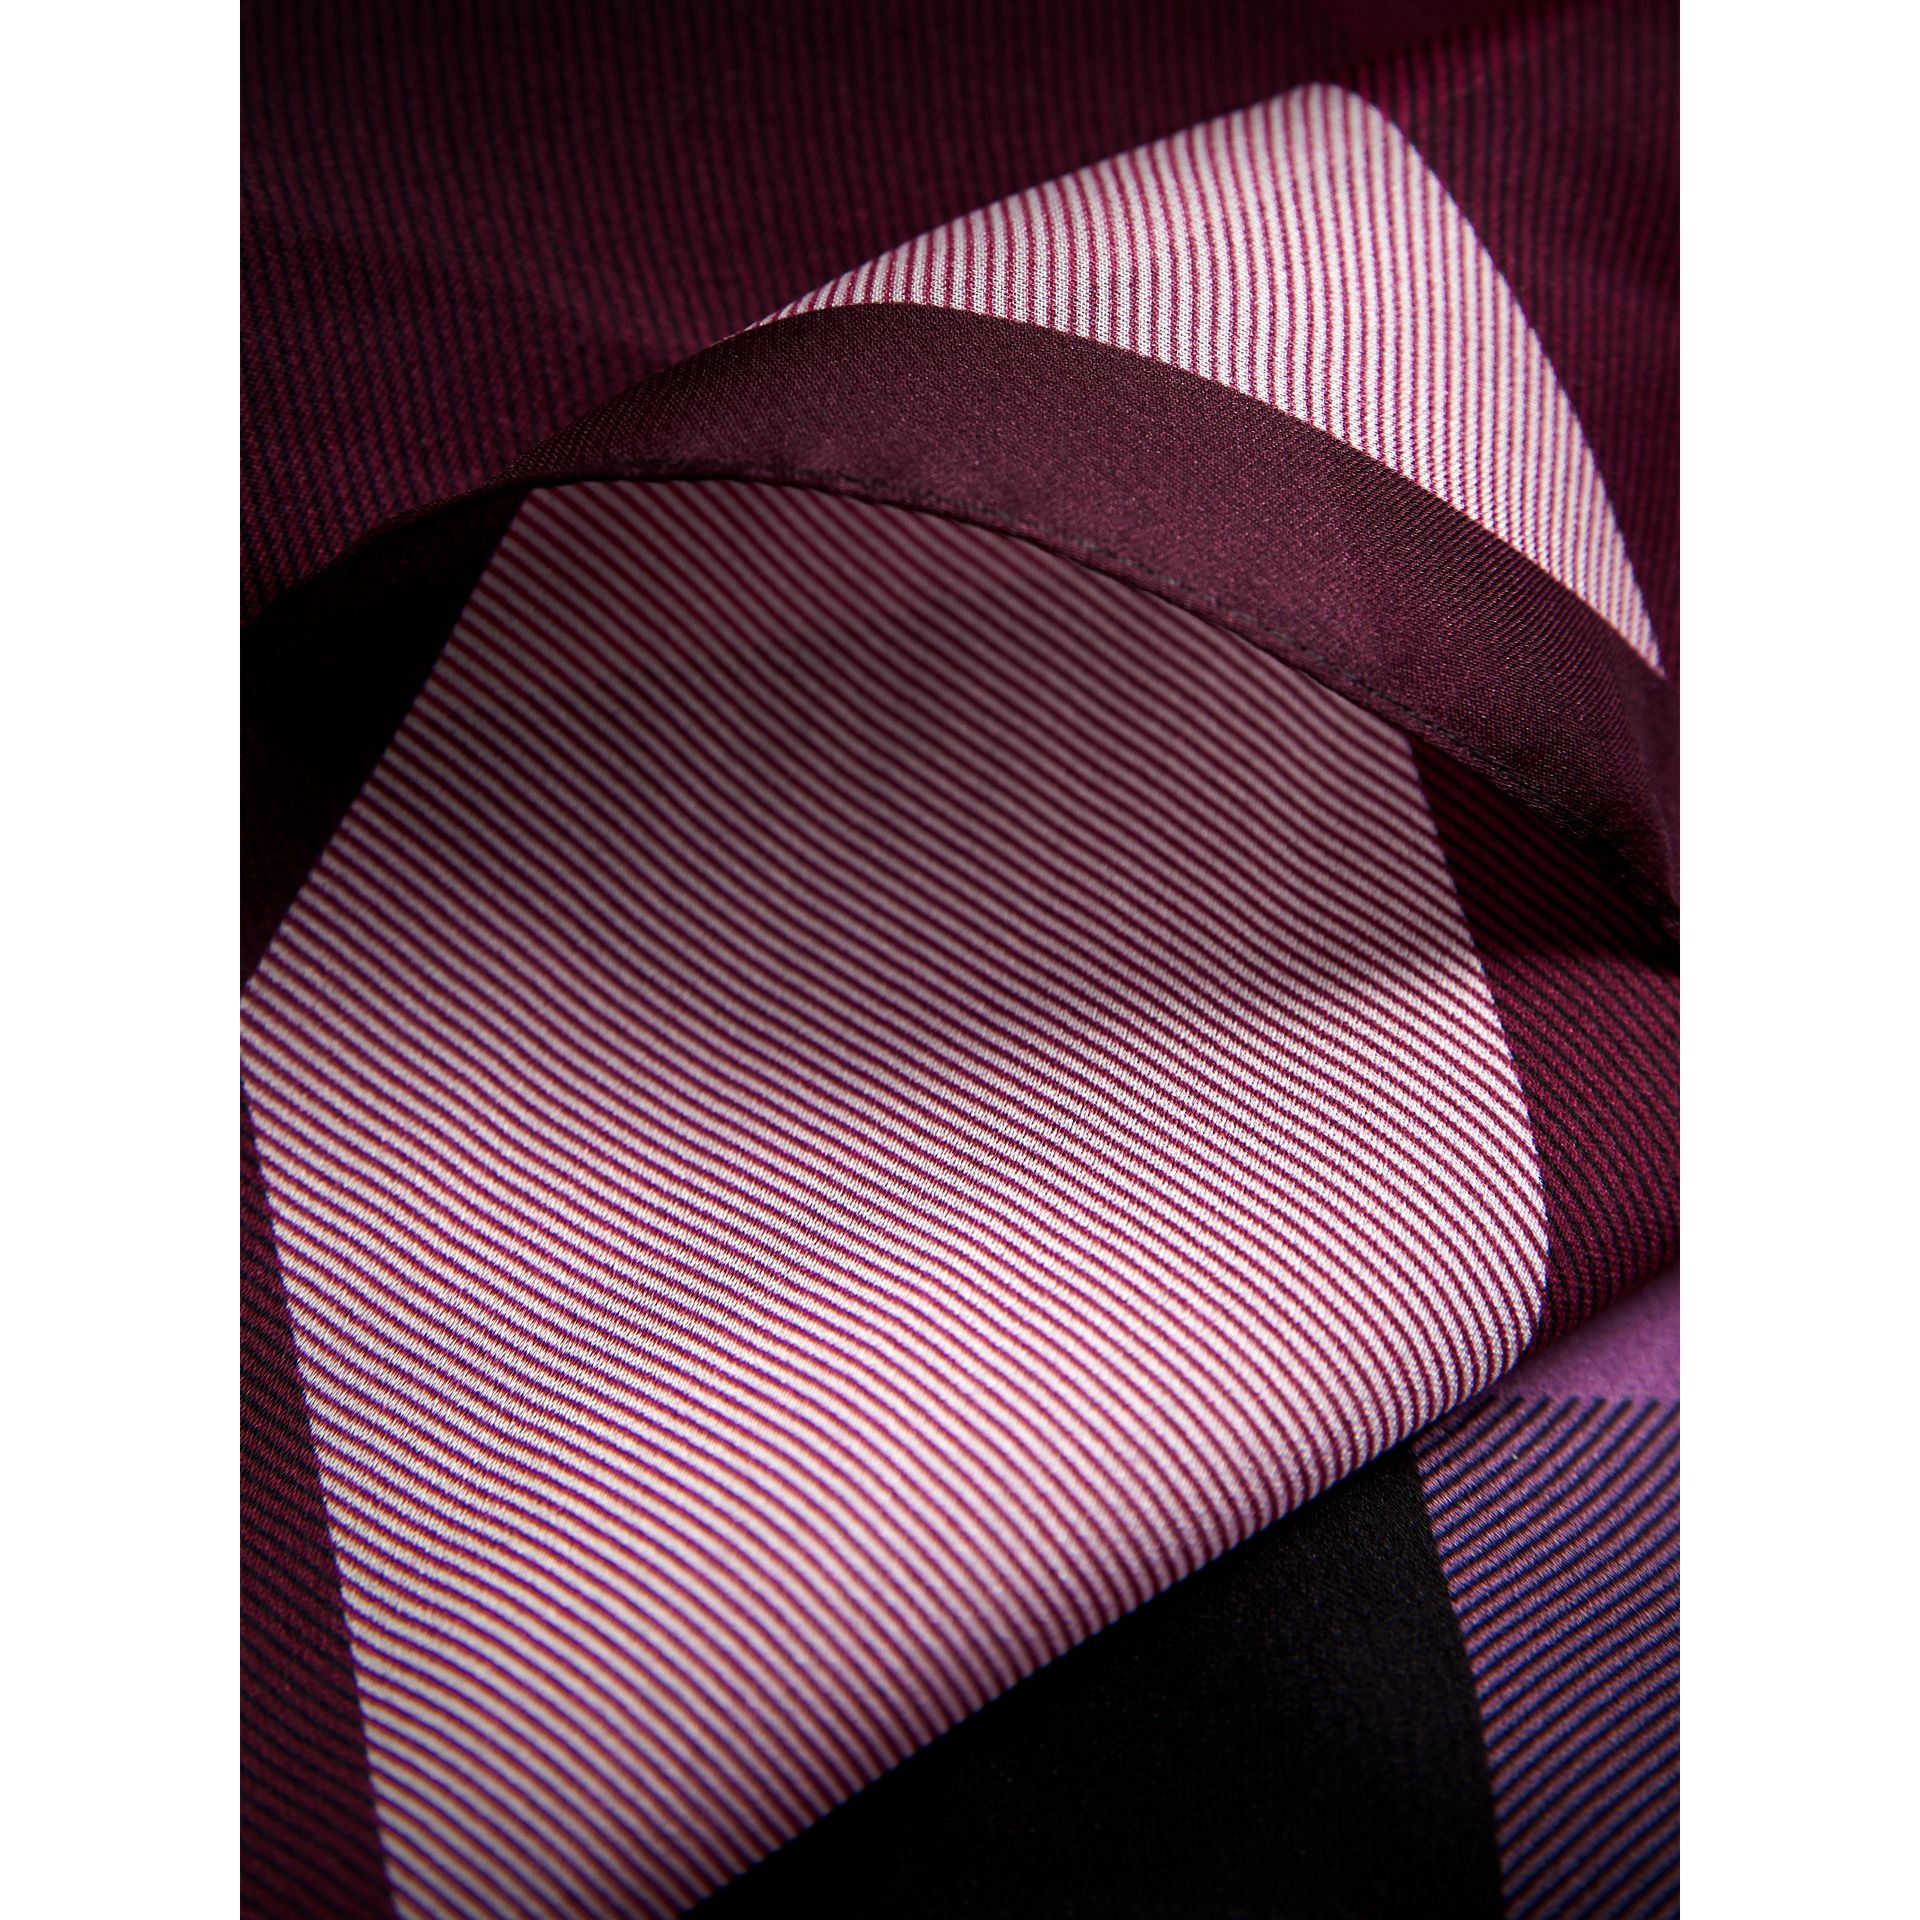 Ombré Washed Check Silk Scarf in Plum - Women | Burberry Singapore - gallery image 2